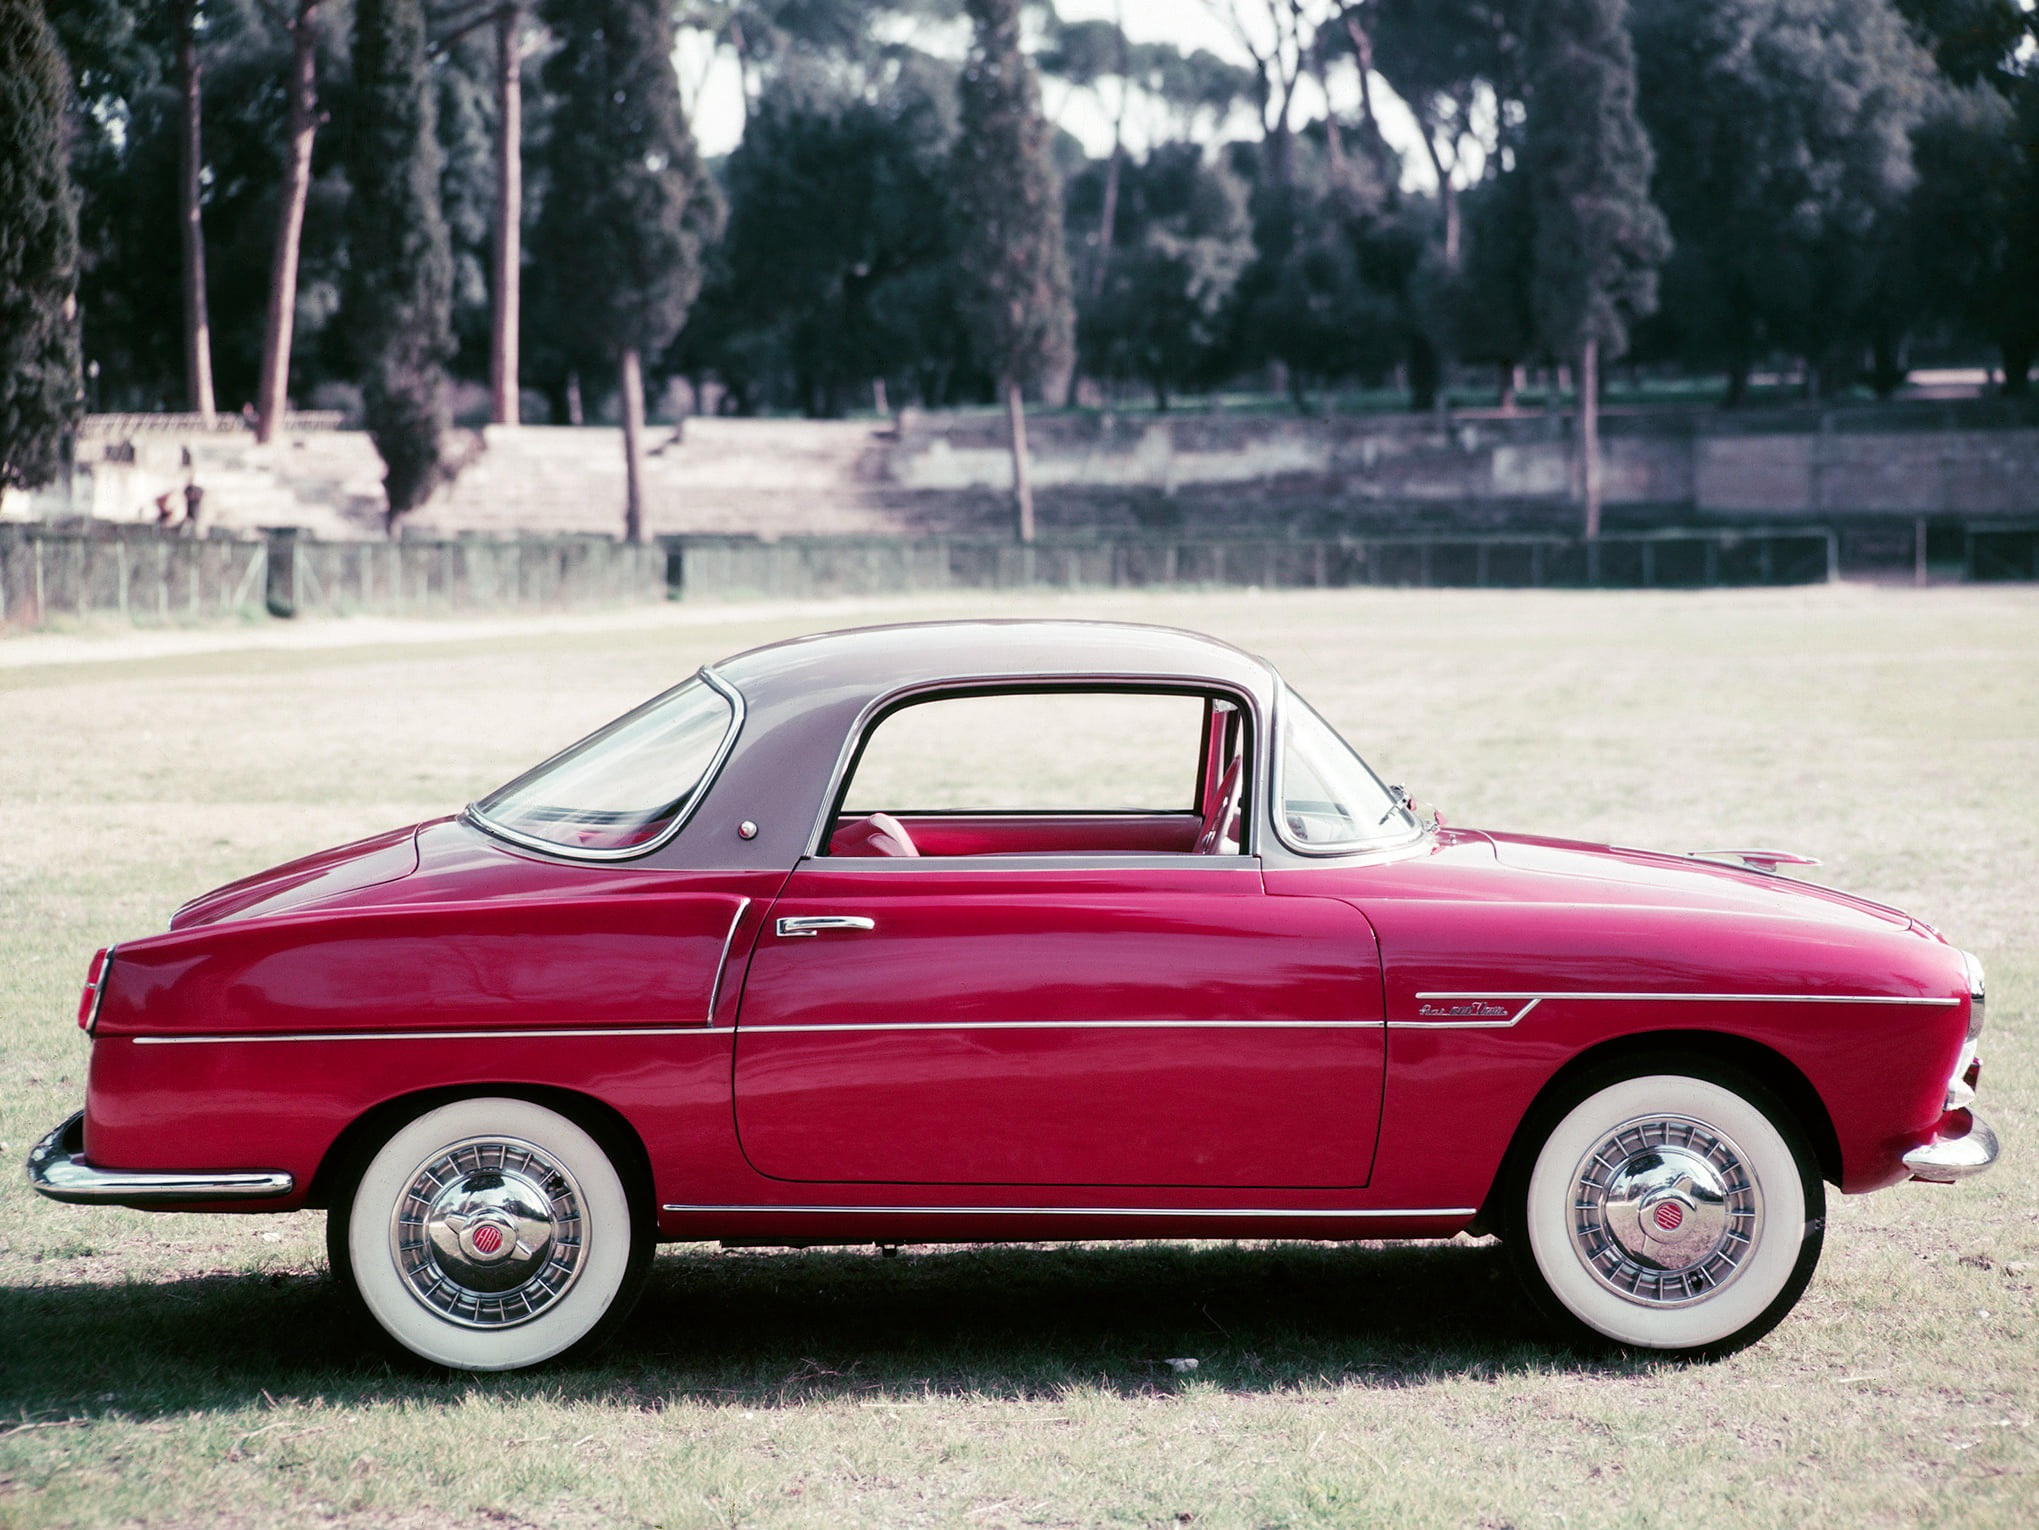 Fiat-600-Coupe-by-Viotti--1959